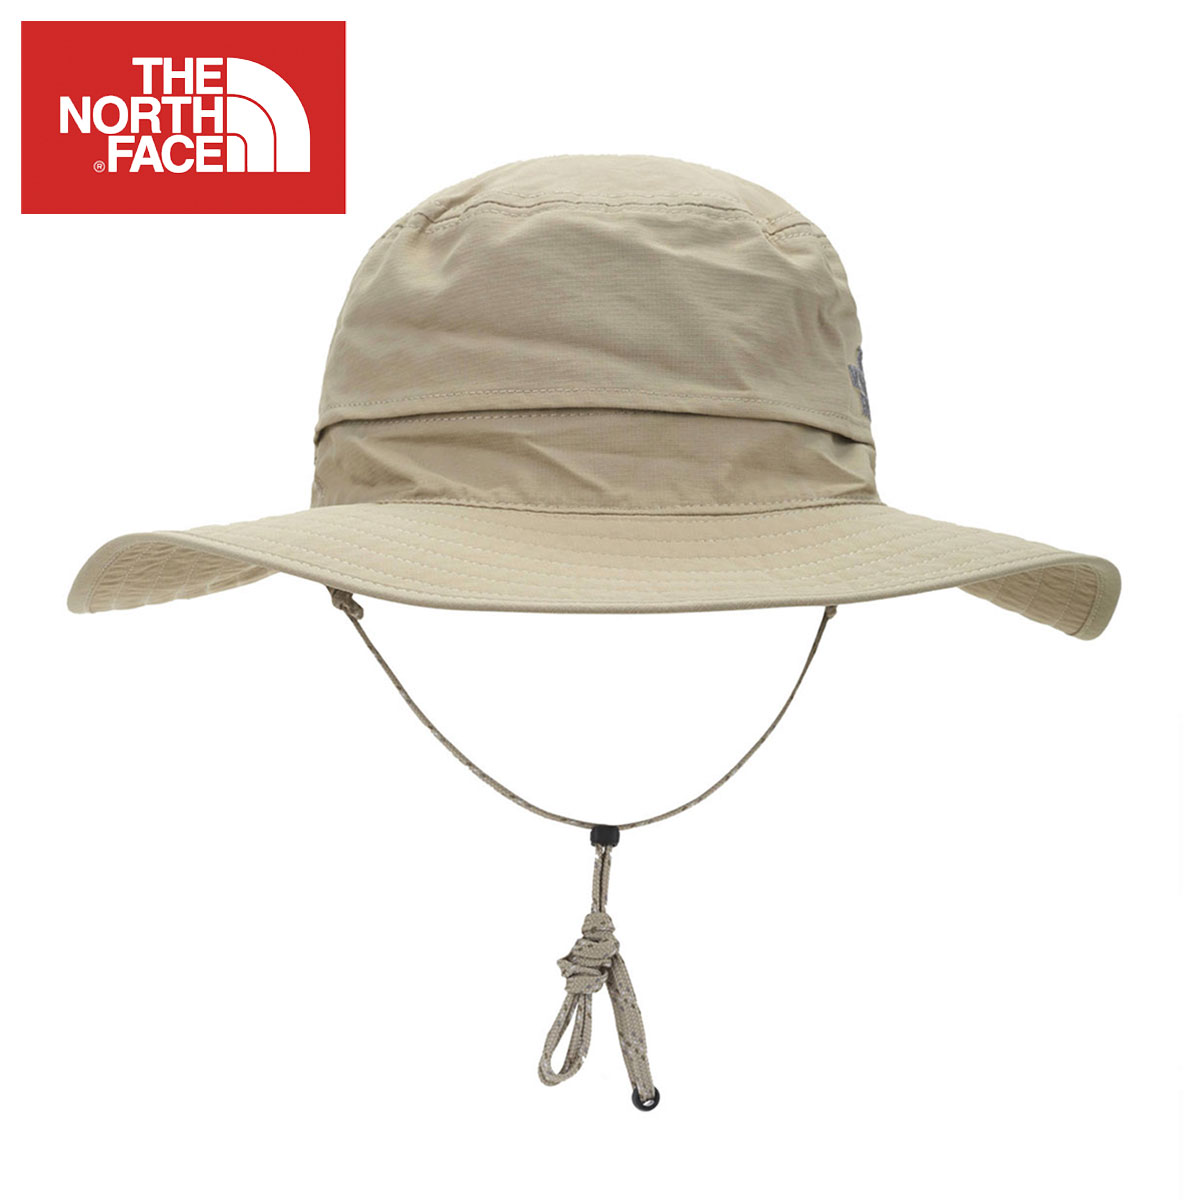 3941c298bfb North Face THE NORTH FACE regular article men gap Dis hat hat THE NORTH  FACE HORIZON BREEZE BRIMMER HAT TNF BLACK